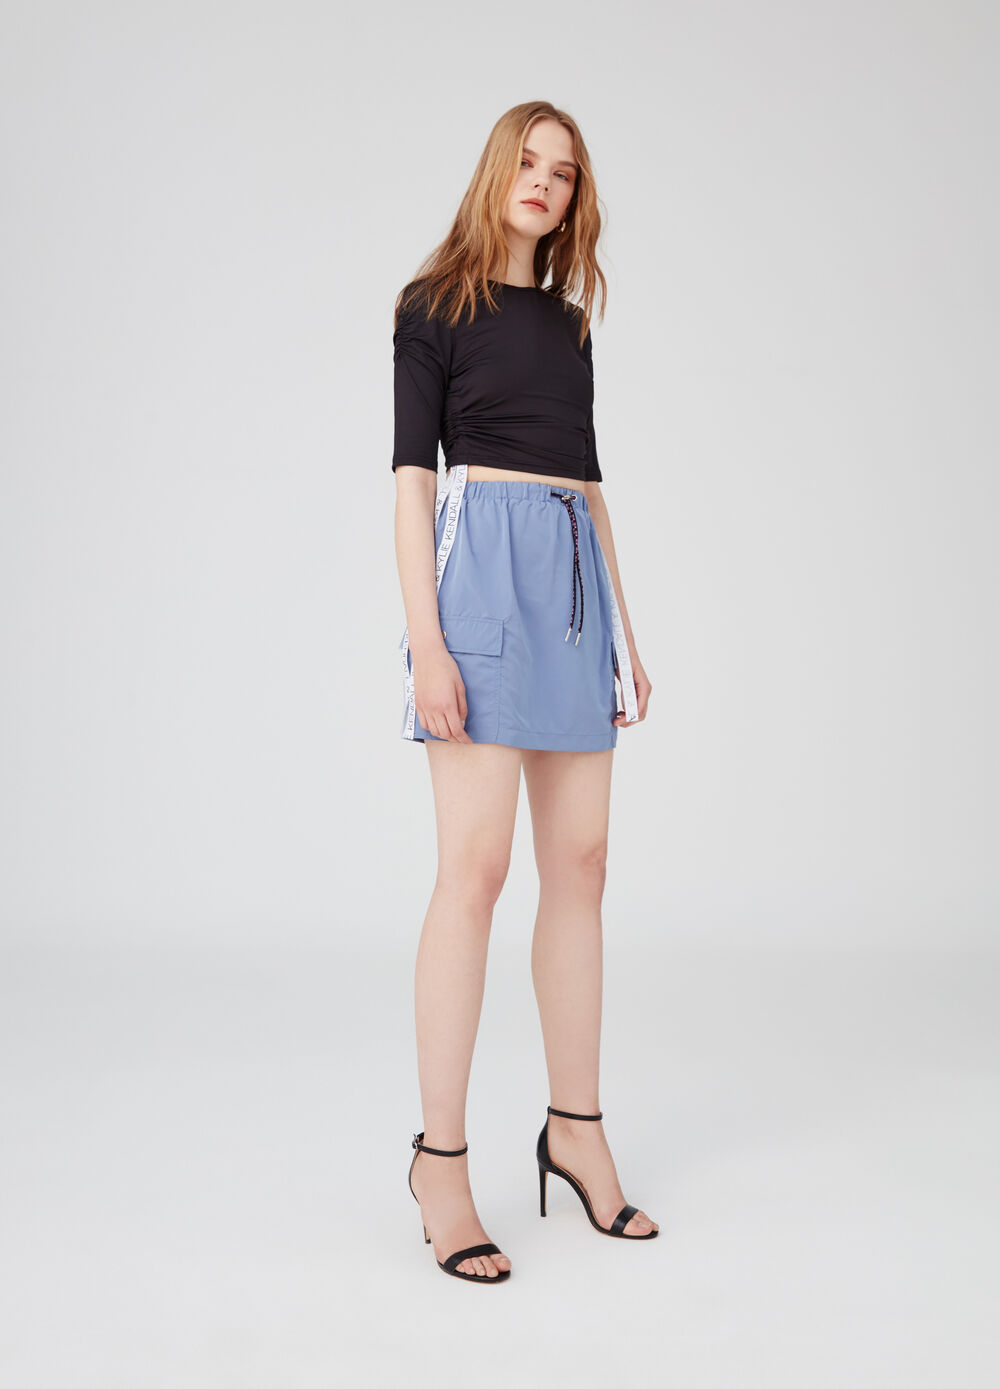 K+K for OVS cropped T-shirt with drawstring